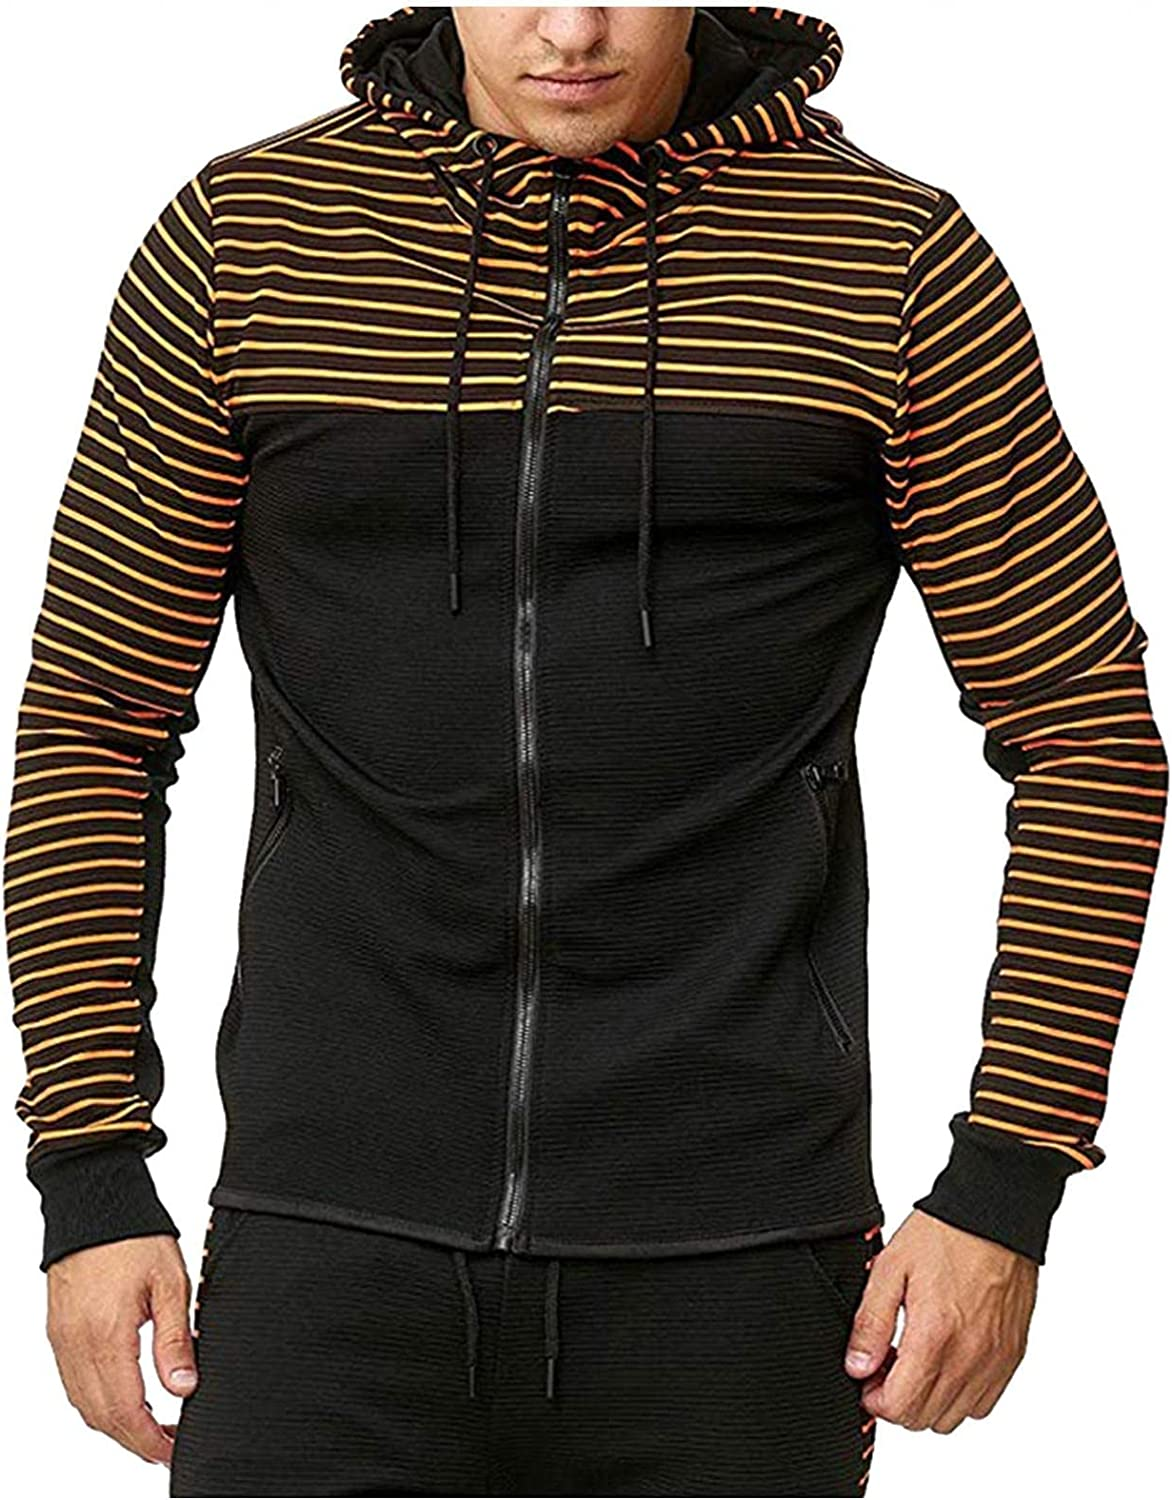 Qsctys Limited price Men's Sweatshirts Hooded Zip Sleeve Shirts Up List price Long Casual